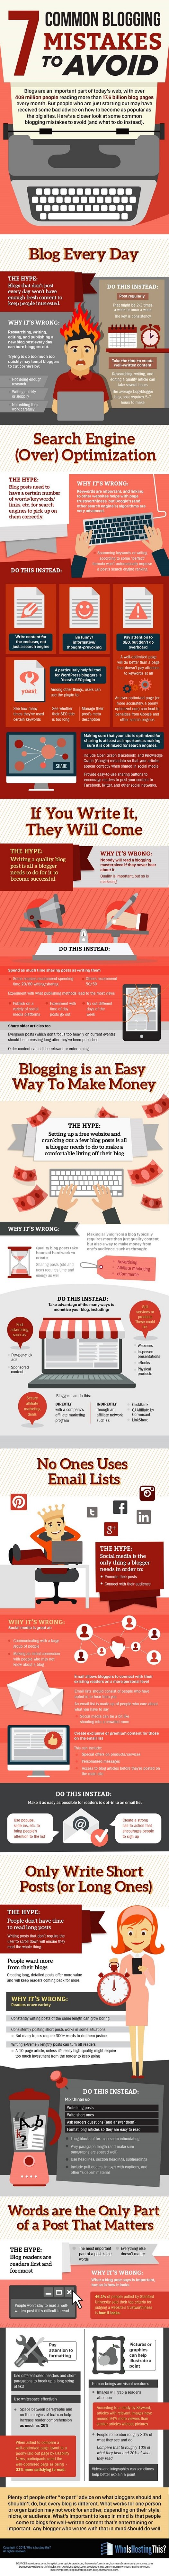 160426-seven-common-blogging-mistakes-to-avoid-infographic-preview